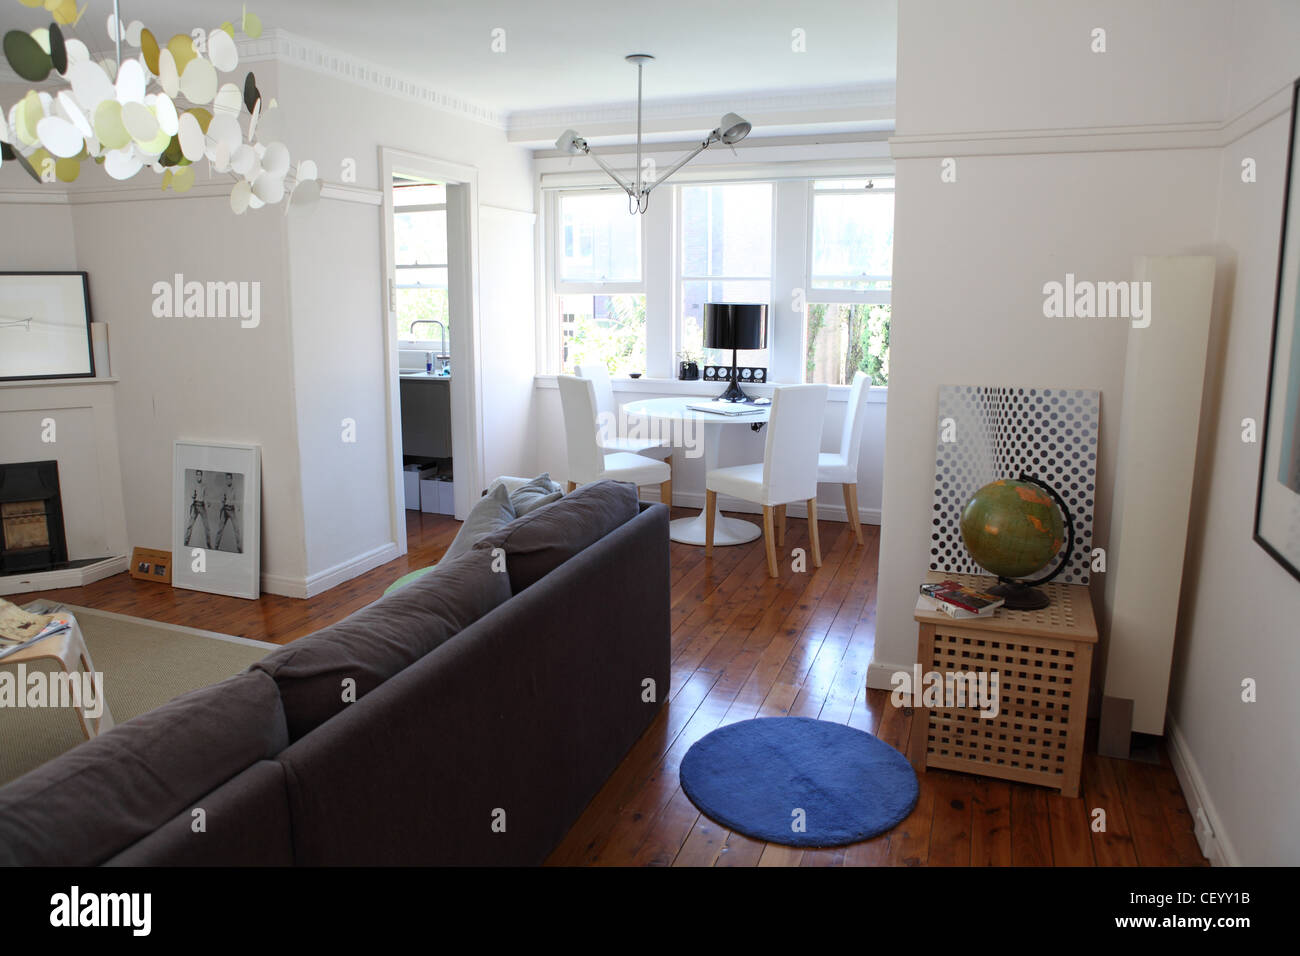 Apartment in Sydney Living room interiwith corner sofa from Habitat, Butterfly pendant chandelier from Ambience Stock Photo